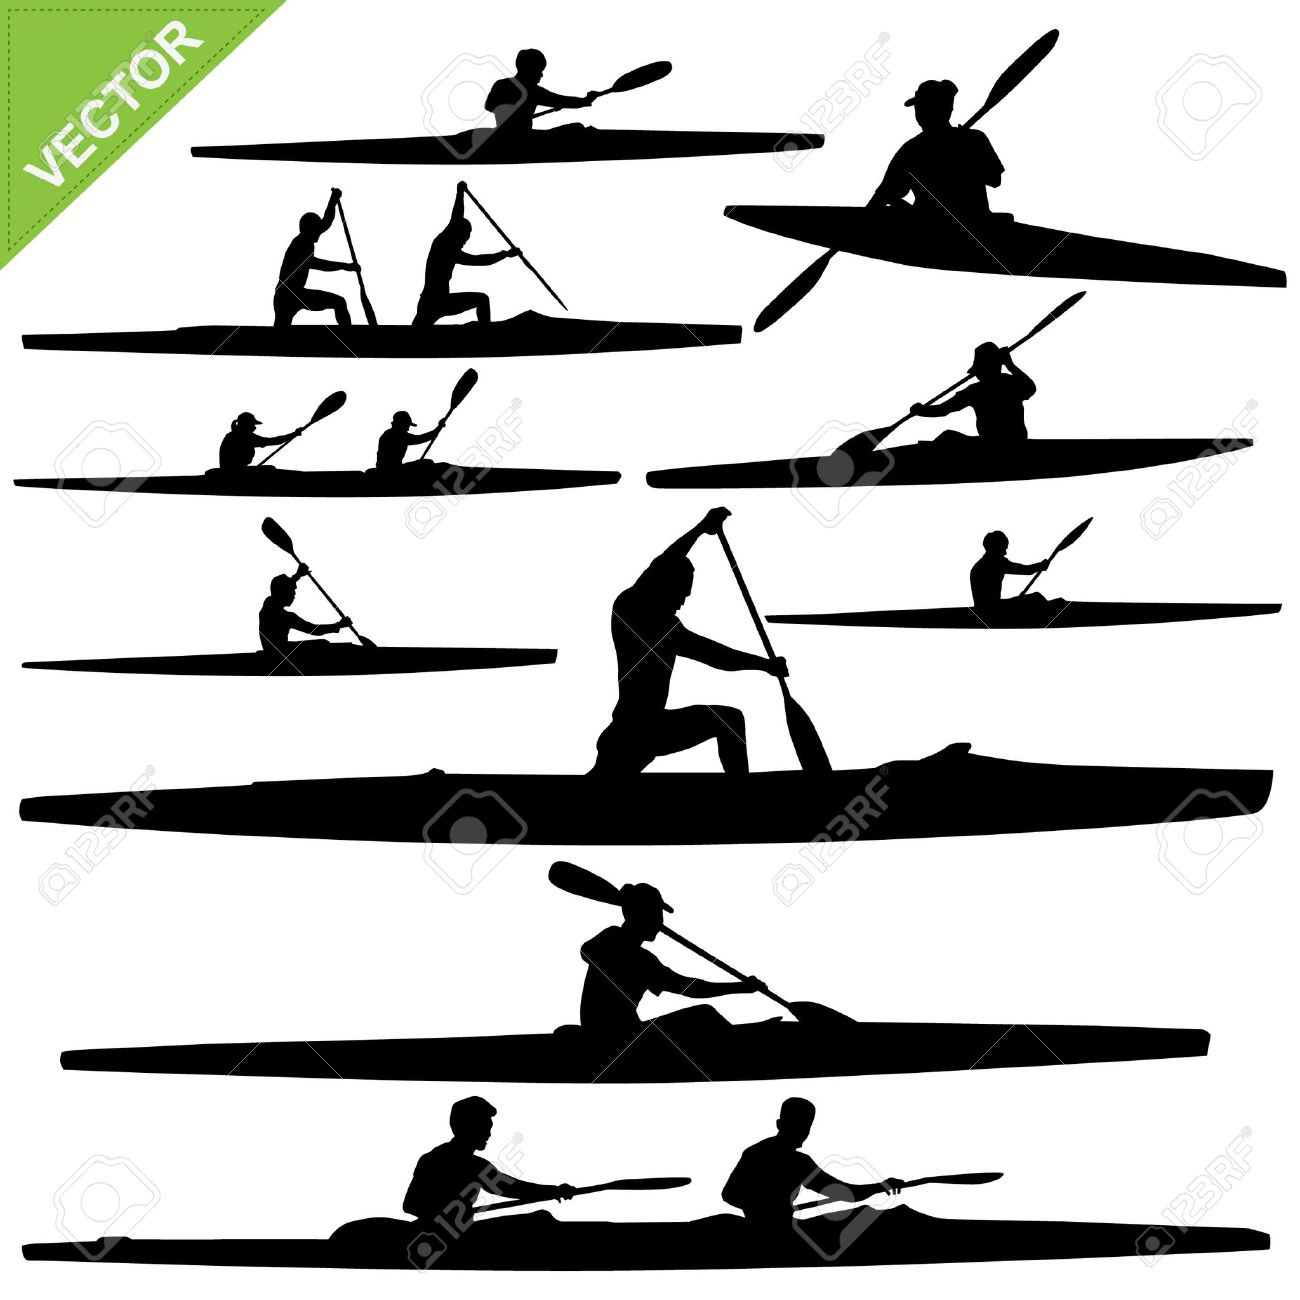 3784 Kayak Stock Vector Illustration And Royalty Free Clipart